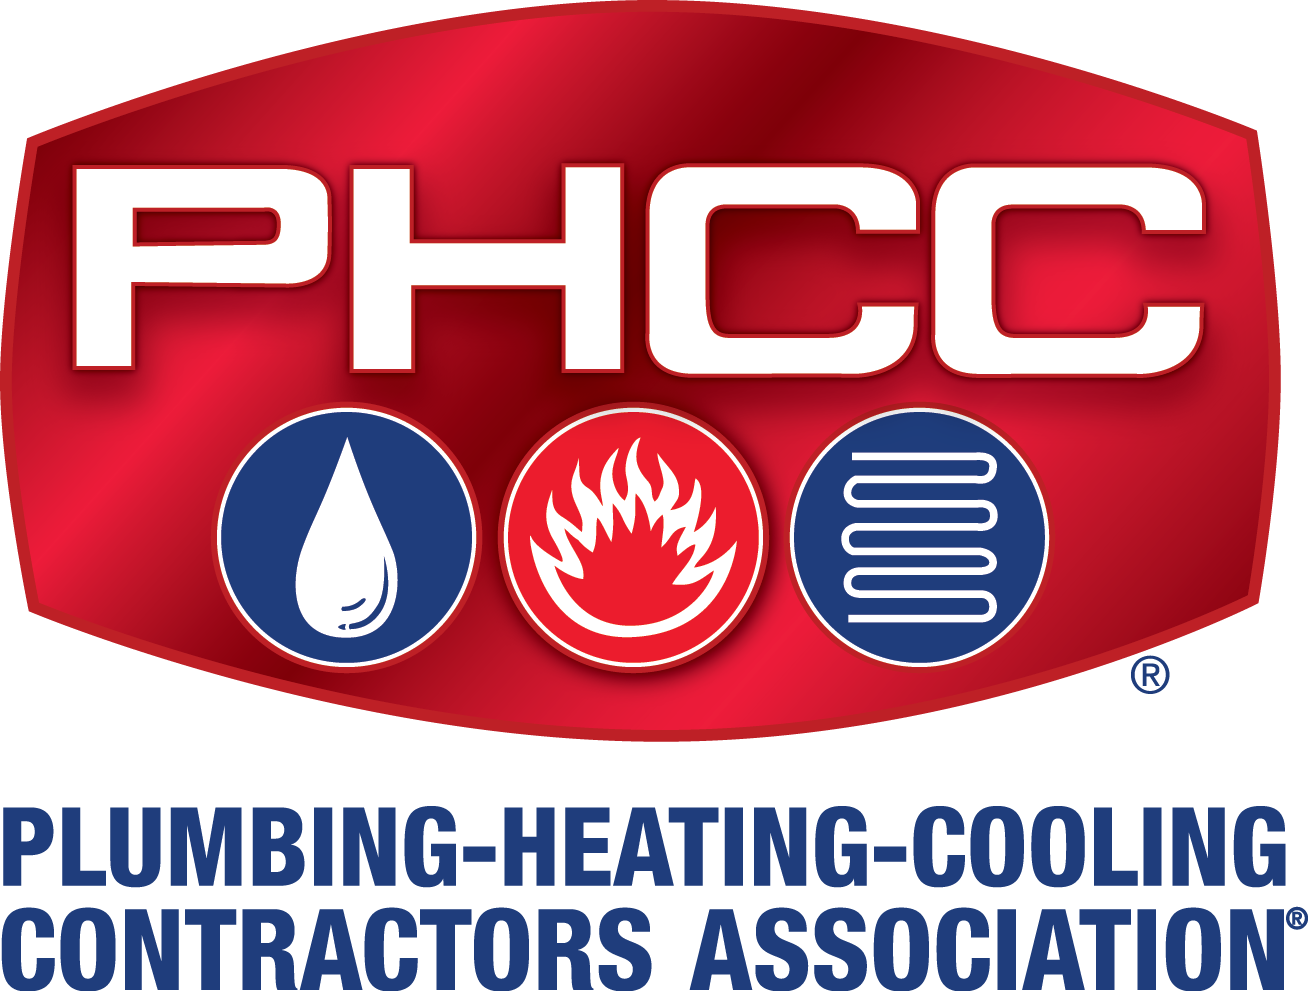 We are a member of the Plumbing-heating-cooling-contractors-association